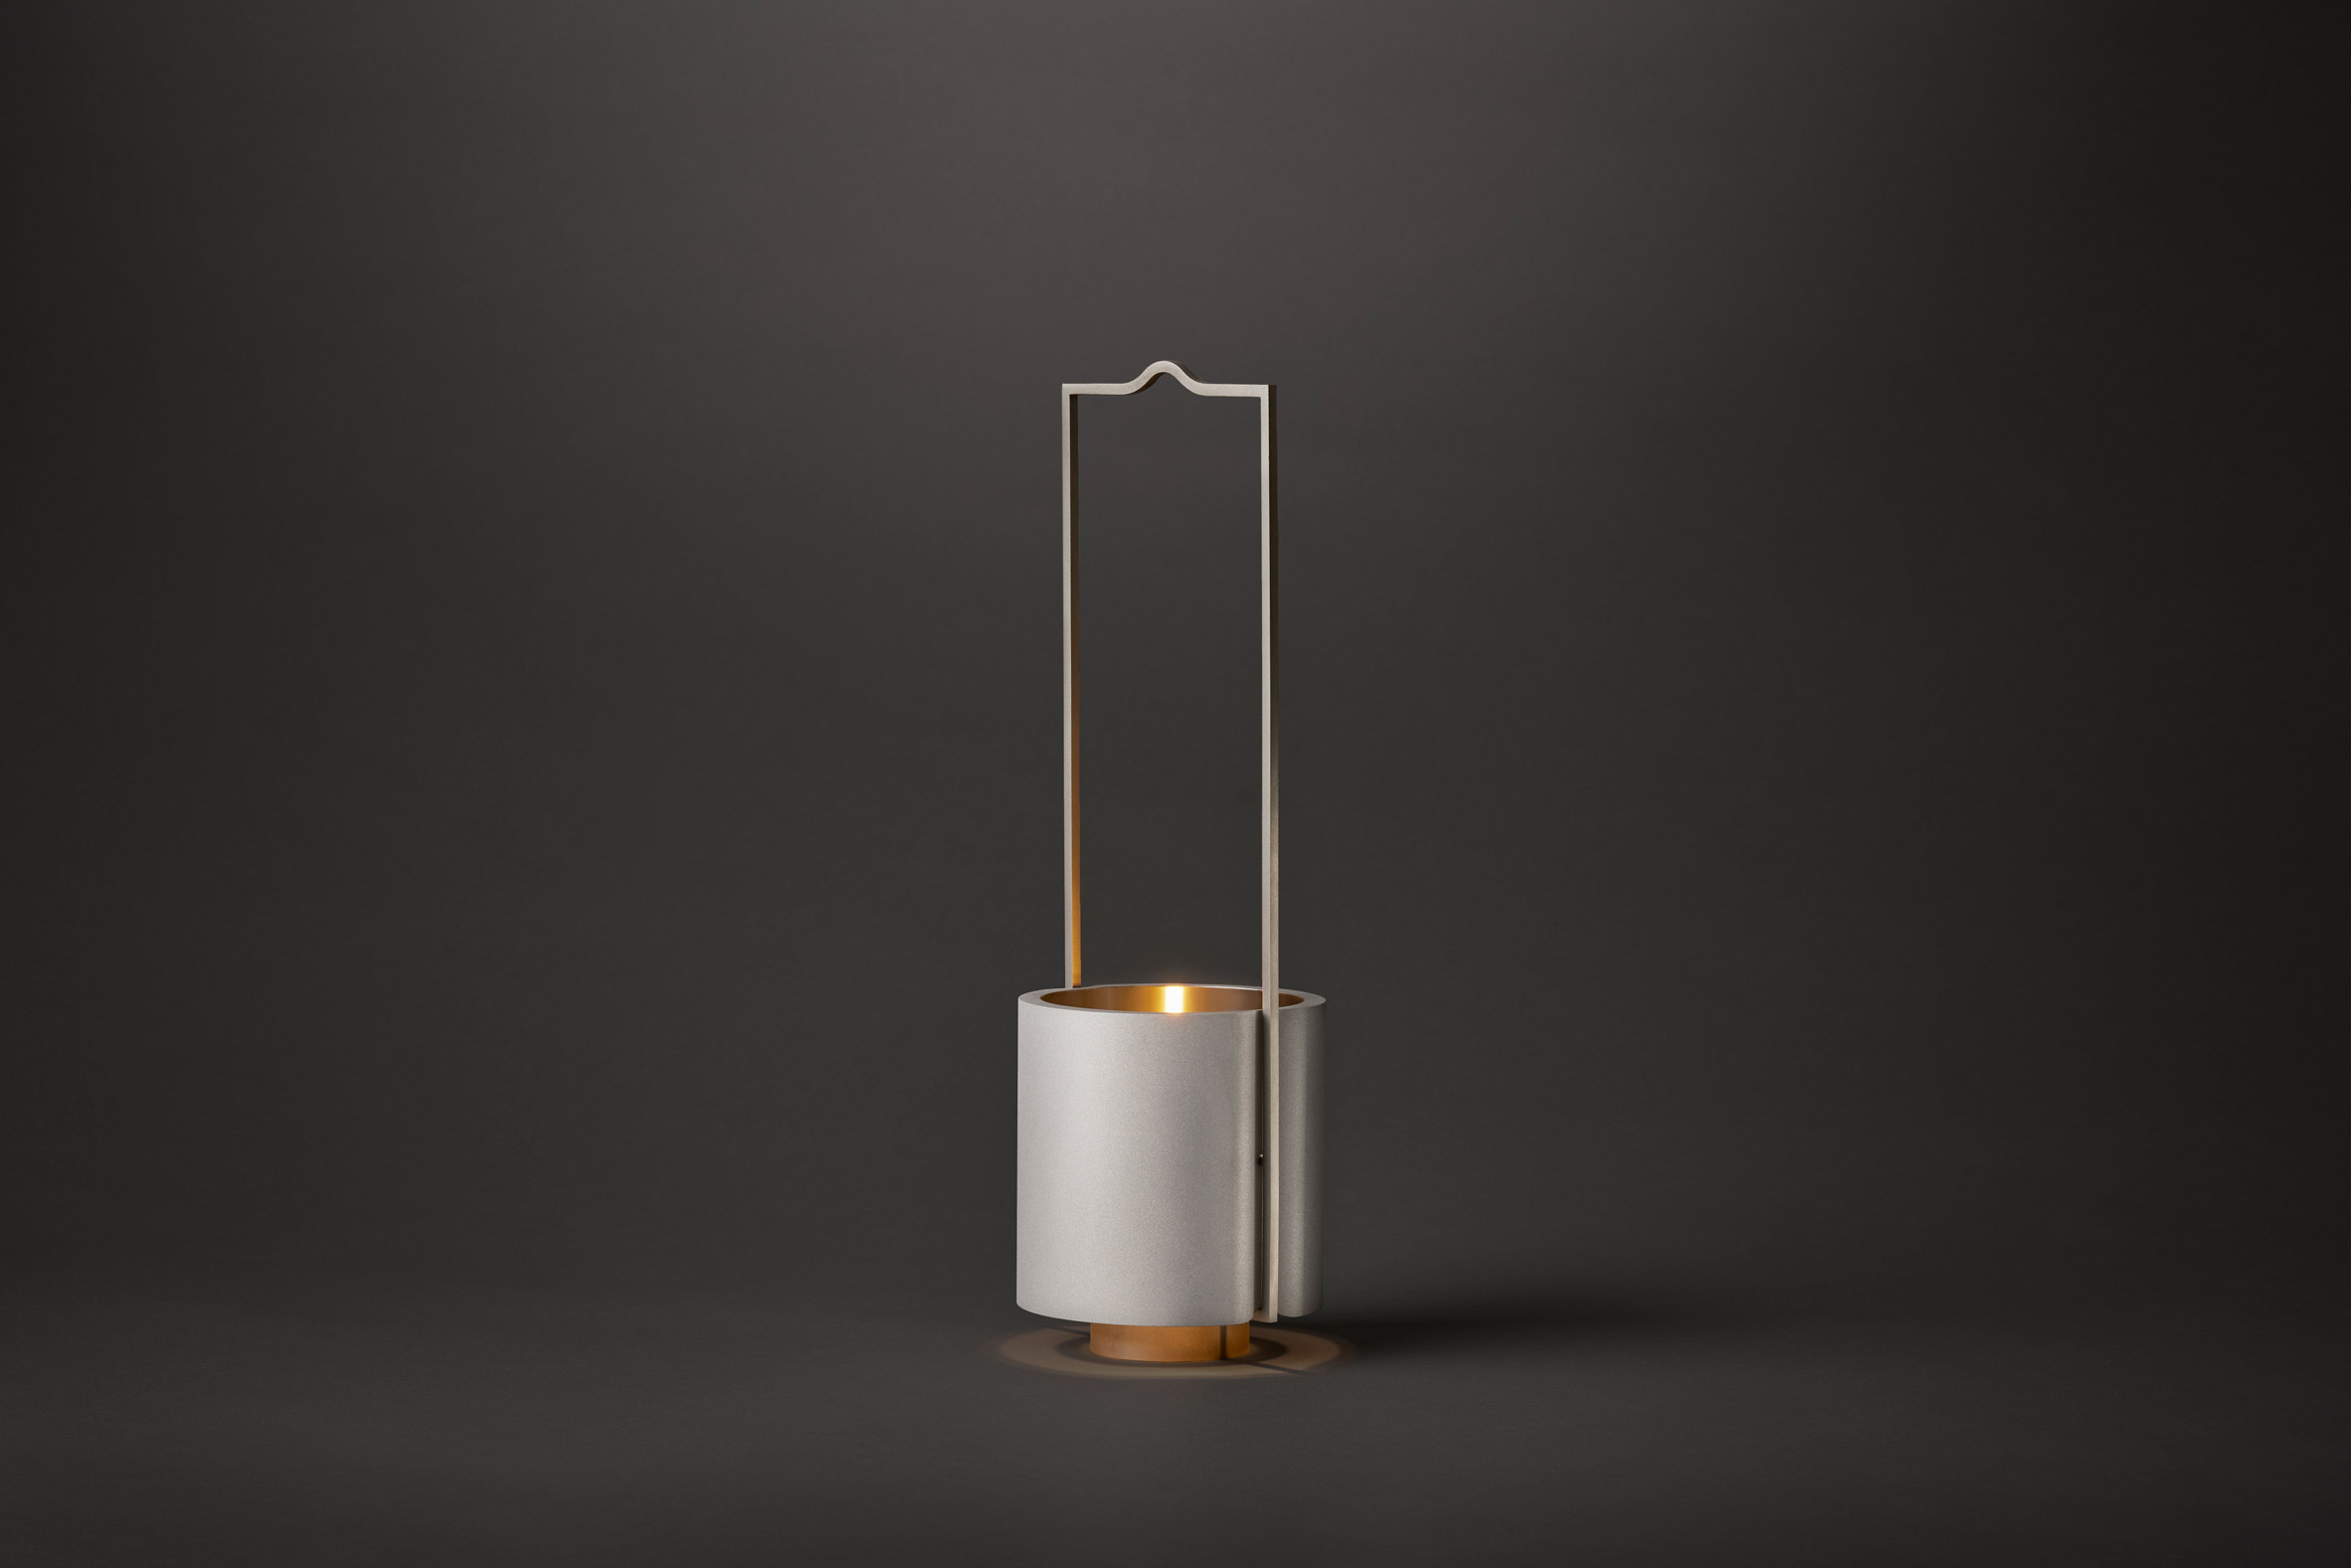 John Pawson designs minimalist oil lantern for Wästberg